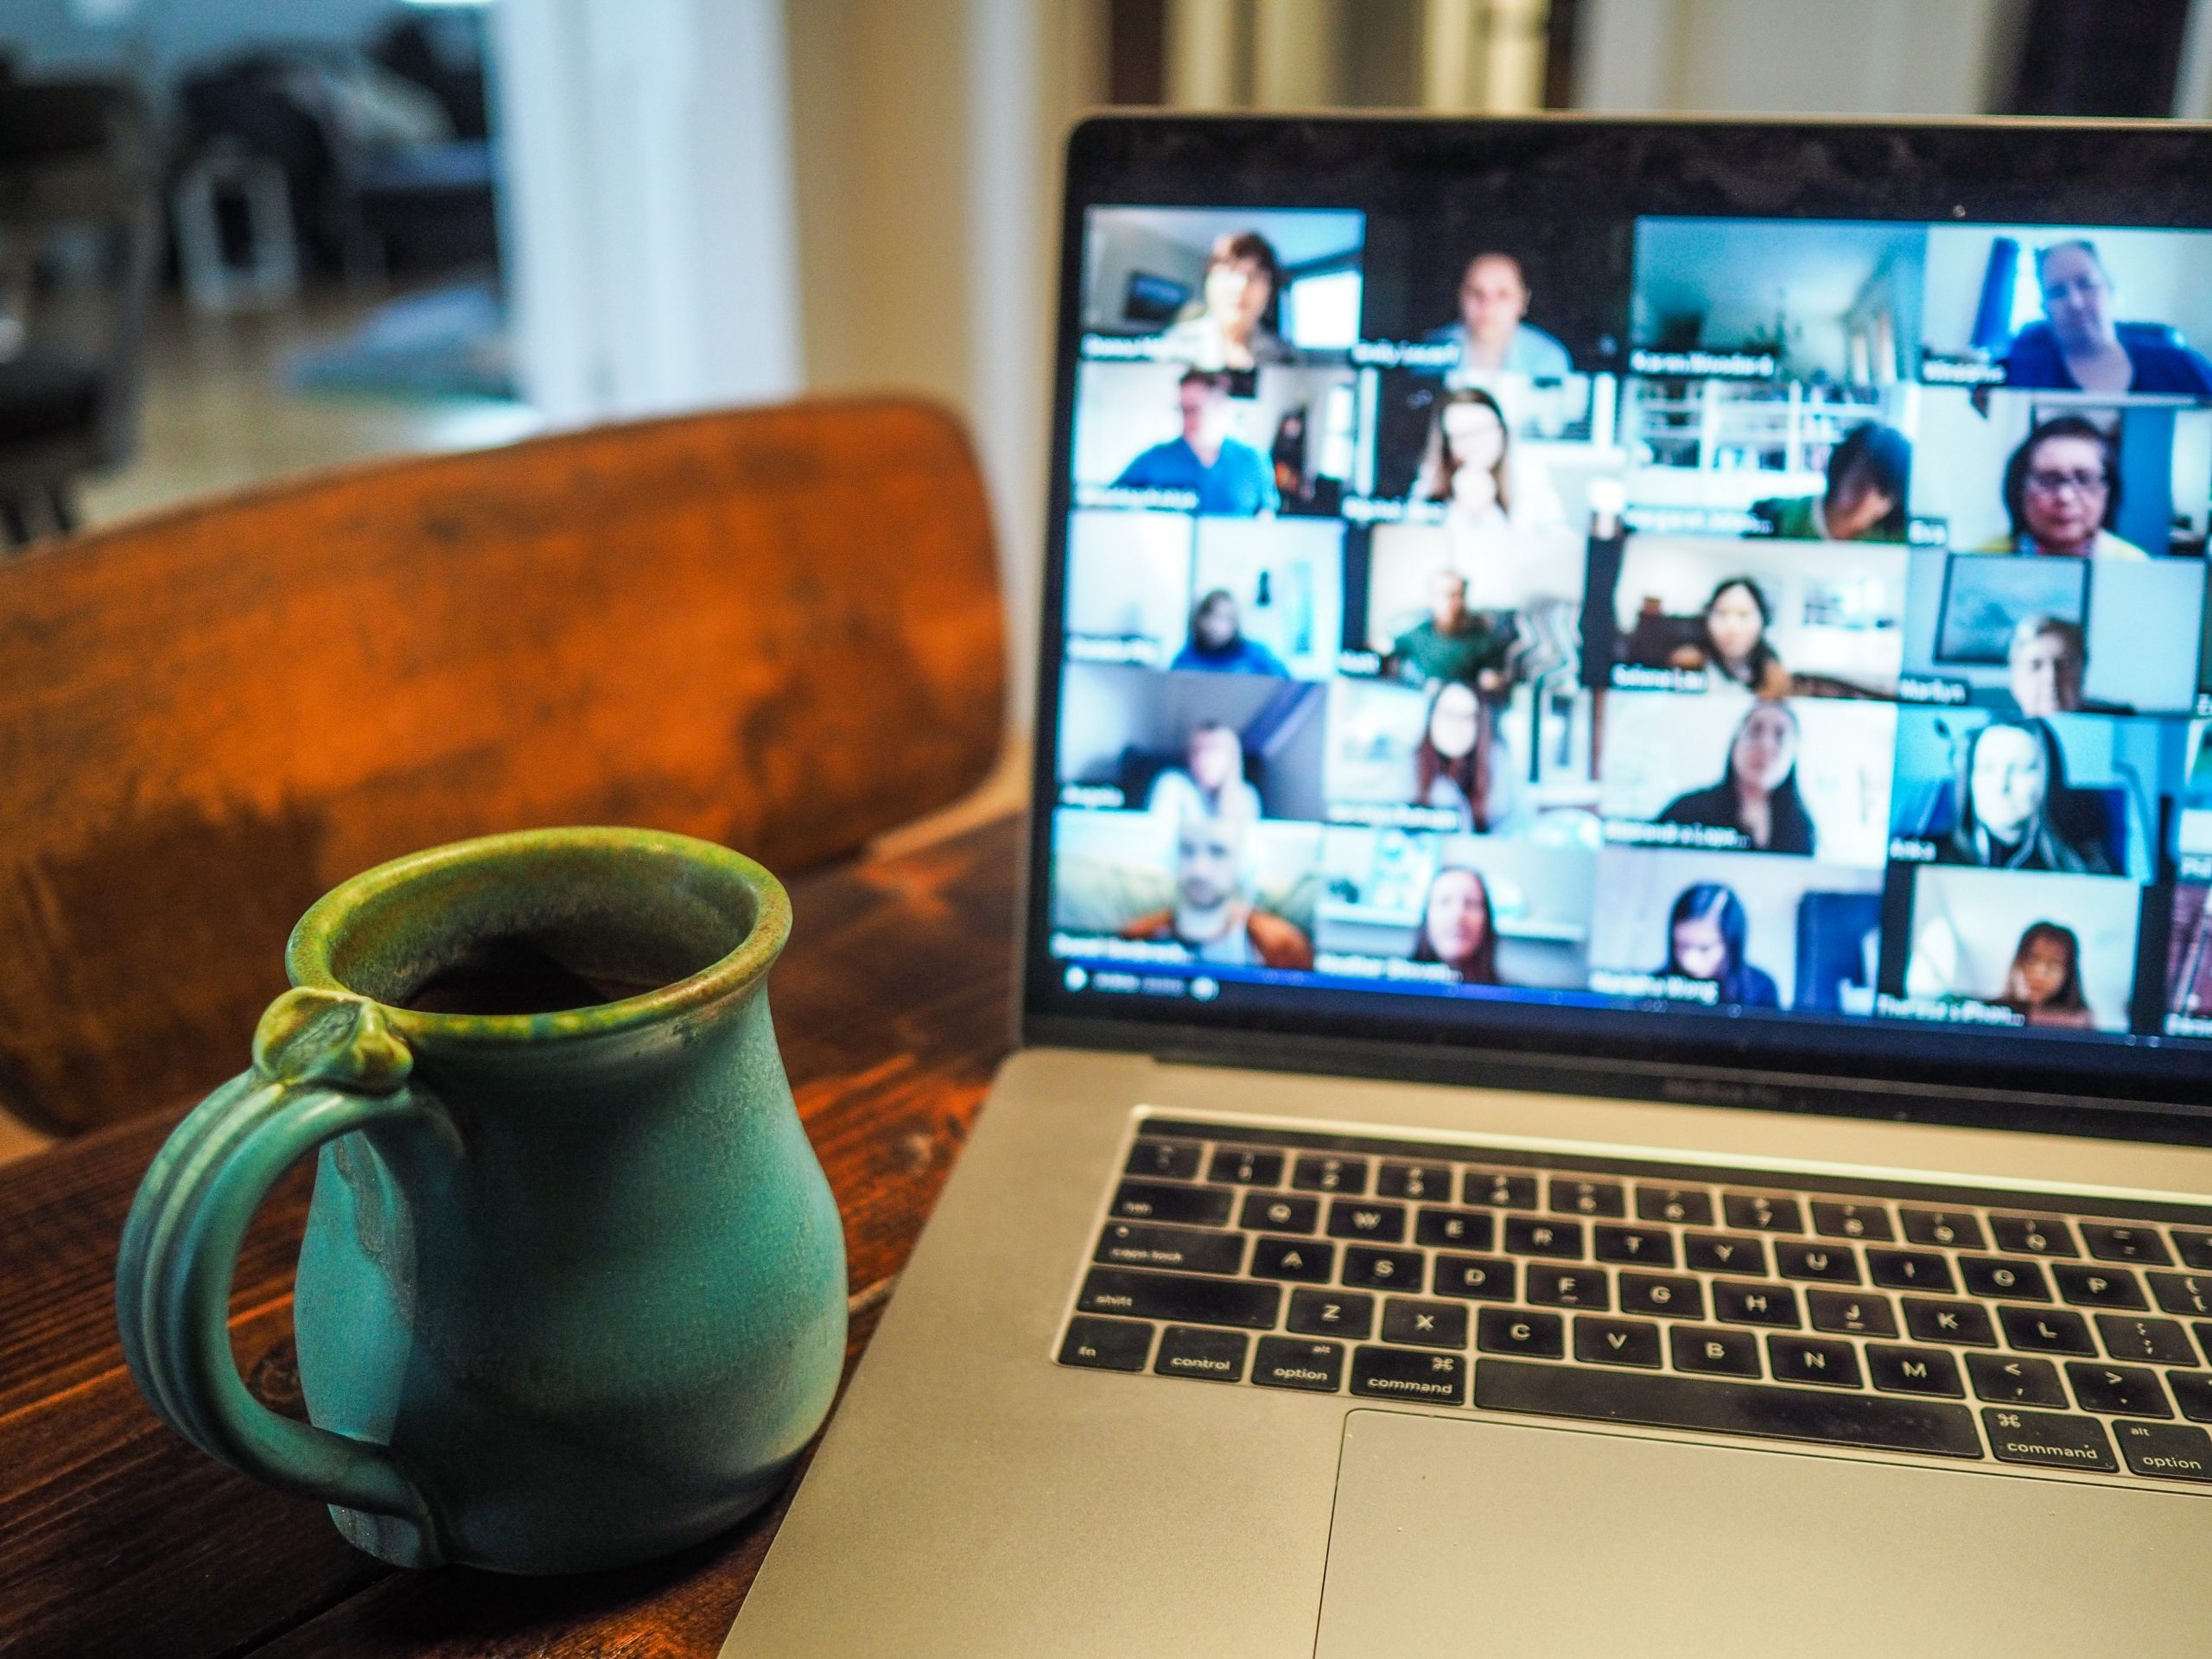 a coffee cup sits in front of an open laptop